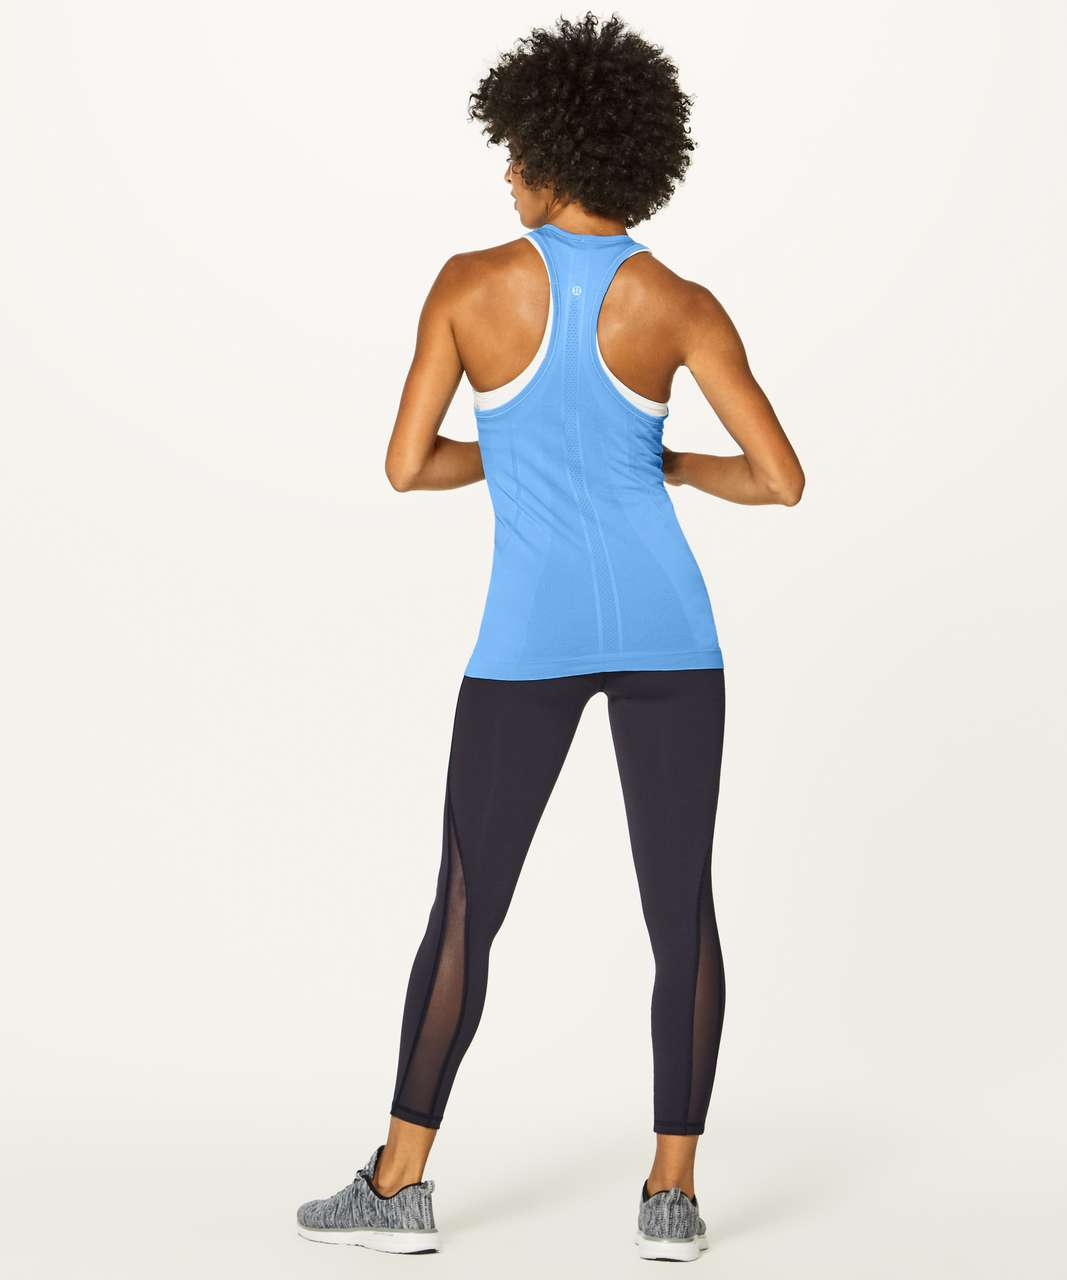 Lululemon Swiftly Tech Racerback - Aero Blue / Aero Blue